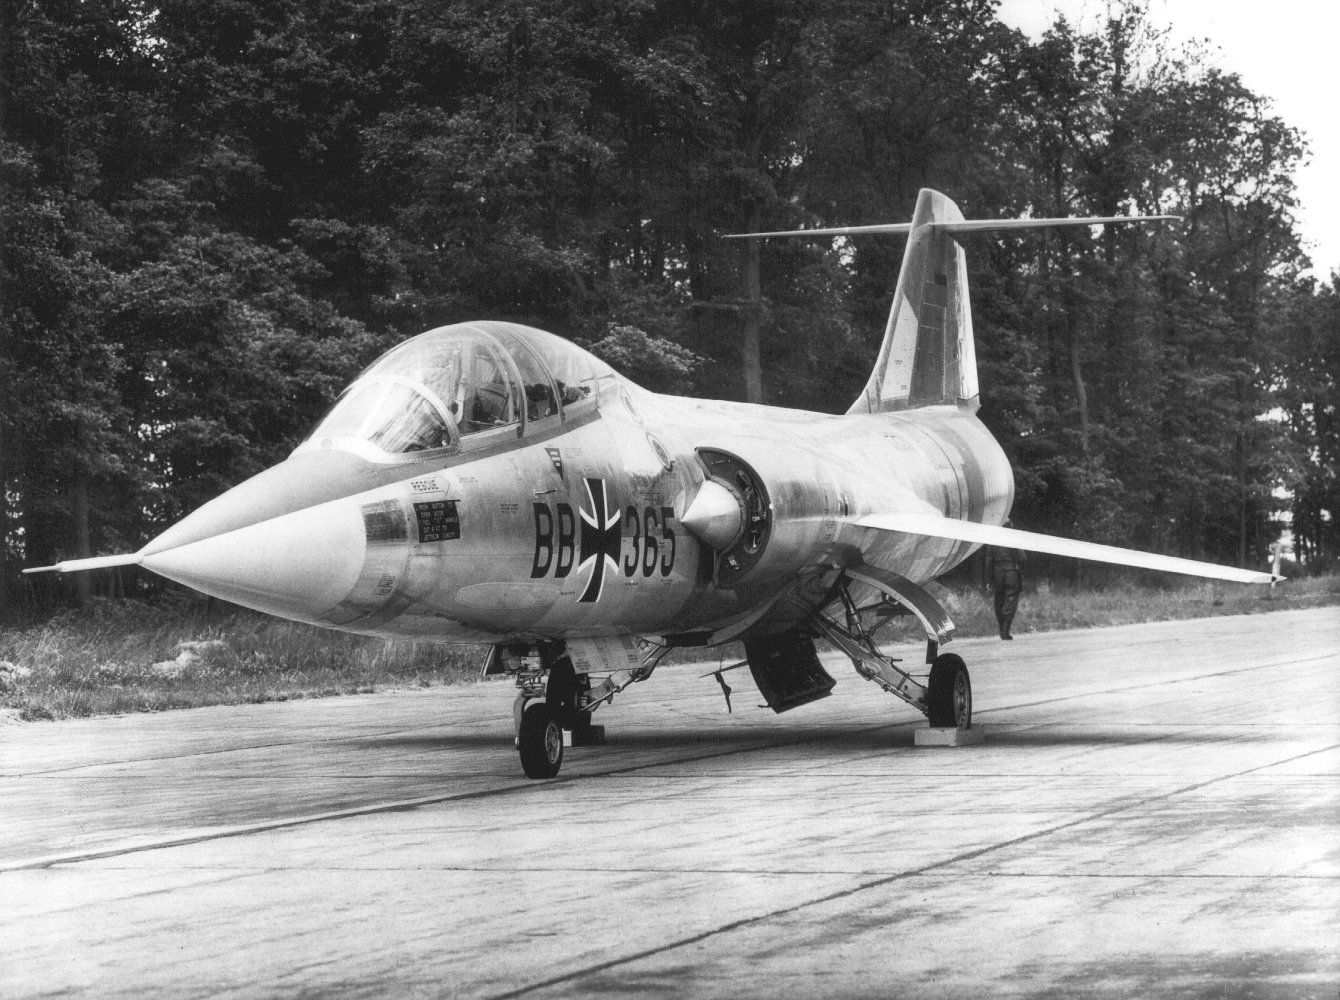 A german f 104f in 1960 aircraft pinterest german aircraft a german f 104f in 1960 military aircraftluftwaffegermanaviationair forceairplanesshipfreeww2 publicscrutiny